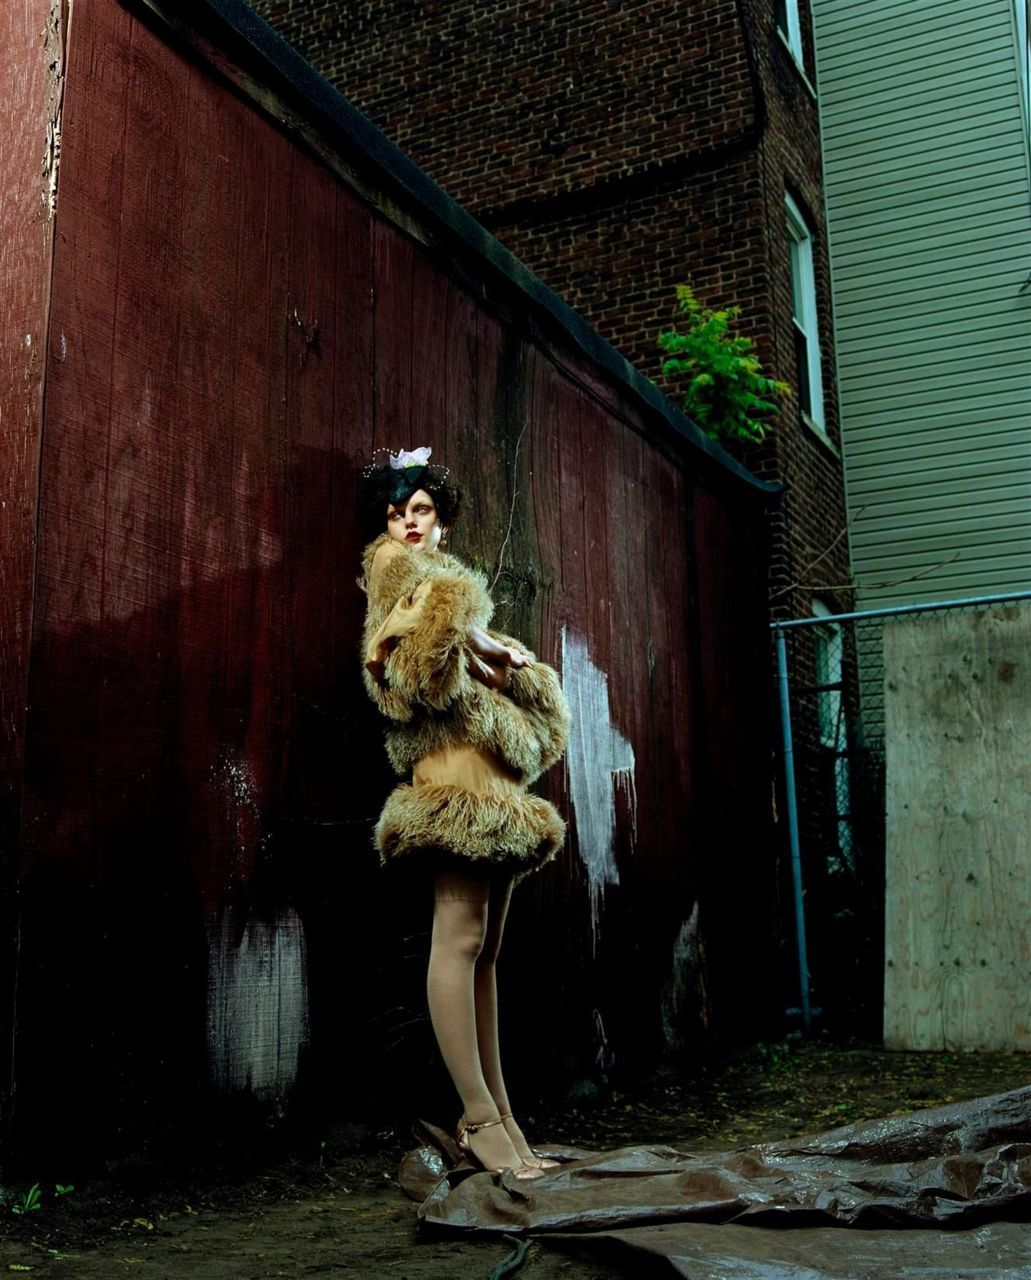 Melancholy BabyVogue Italia, July 2003 Photographer: Steven Meisel  Model: Jessica Stam